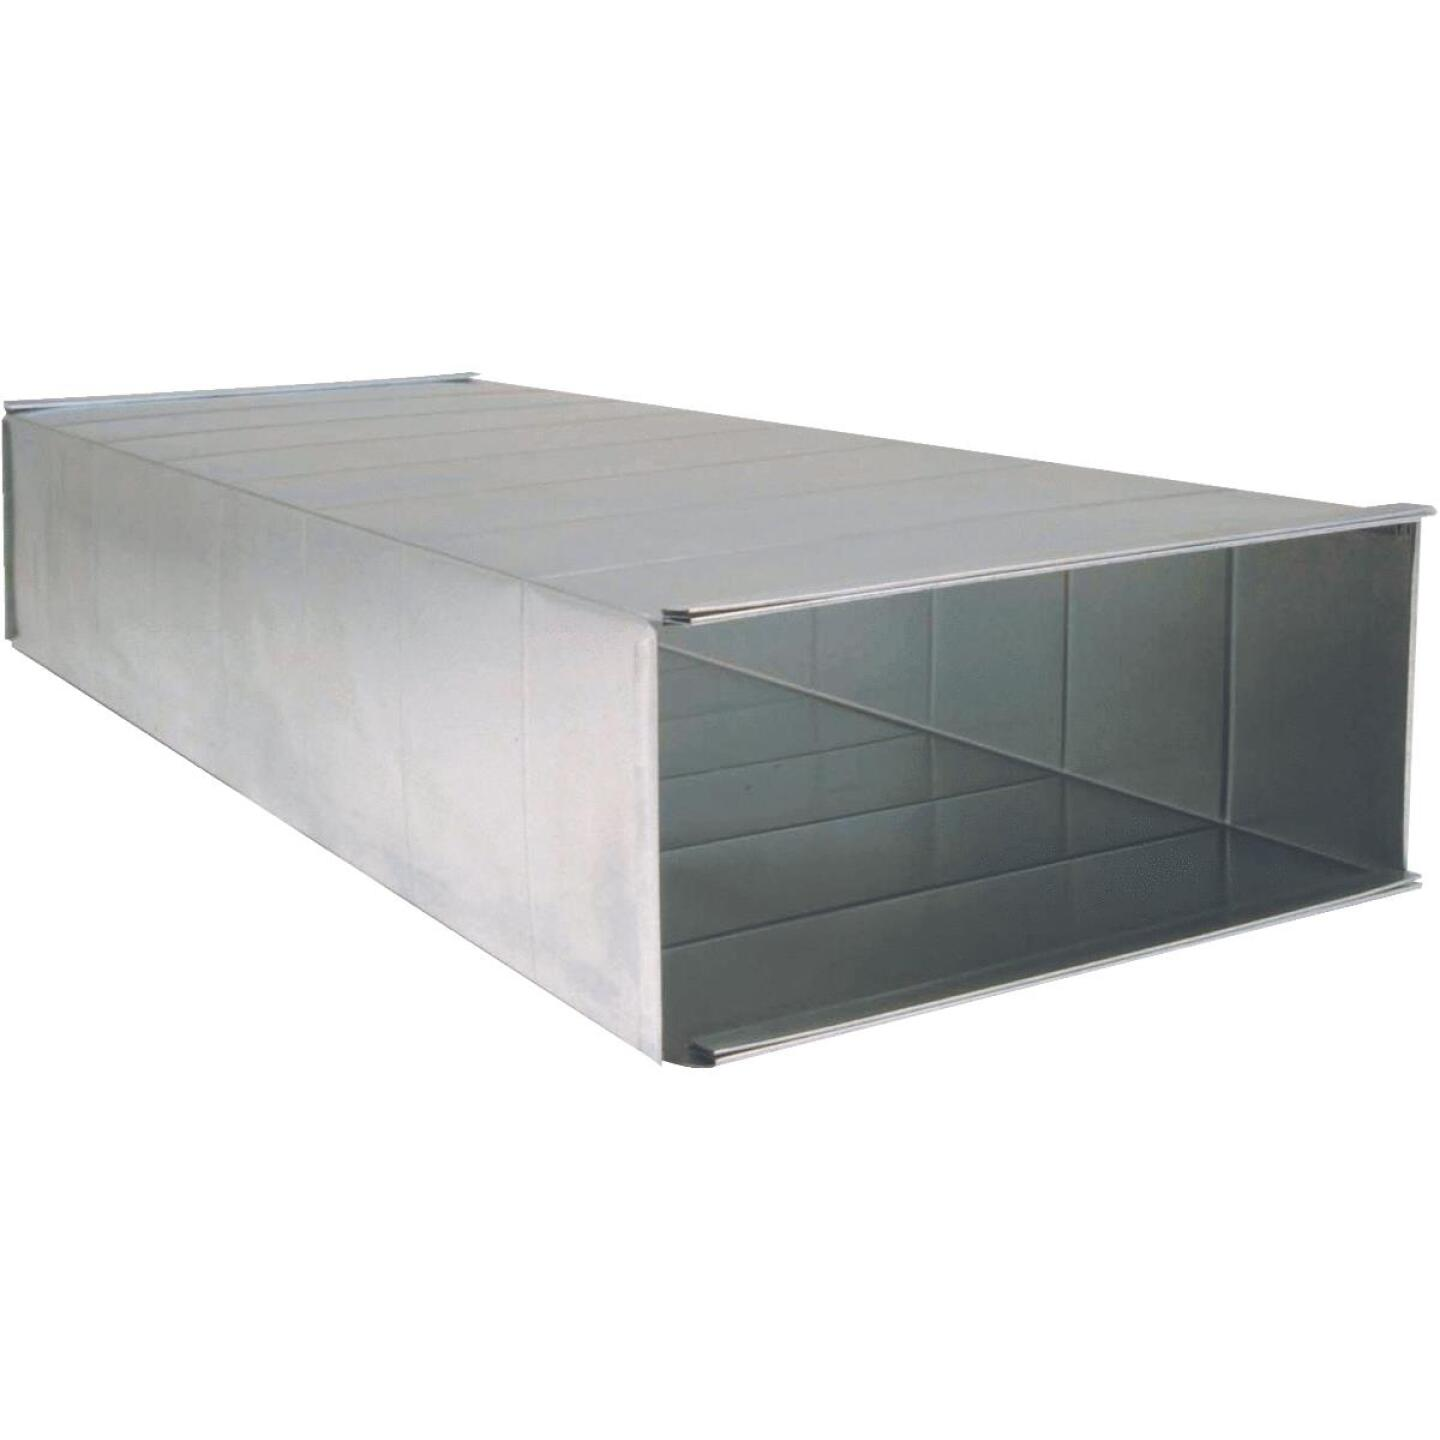 Imperial 28 Ga. 8 In. x 20 In. x 48 In. Galvanized Trunk Duct Image 1